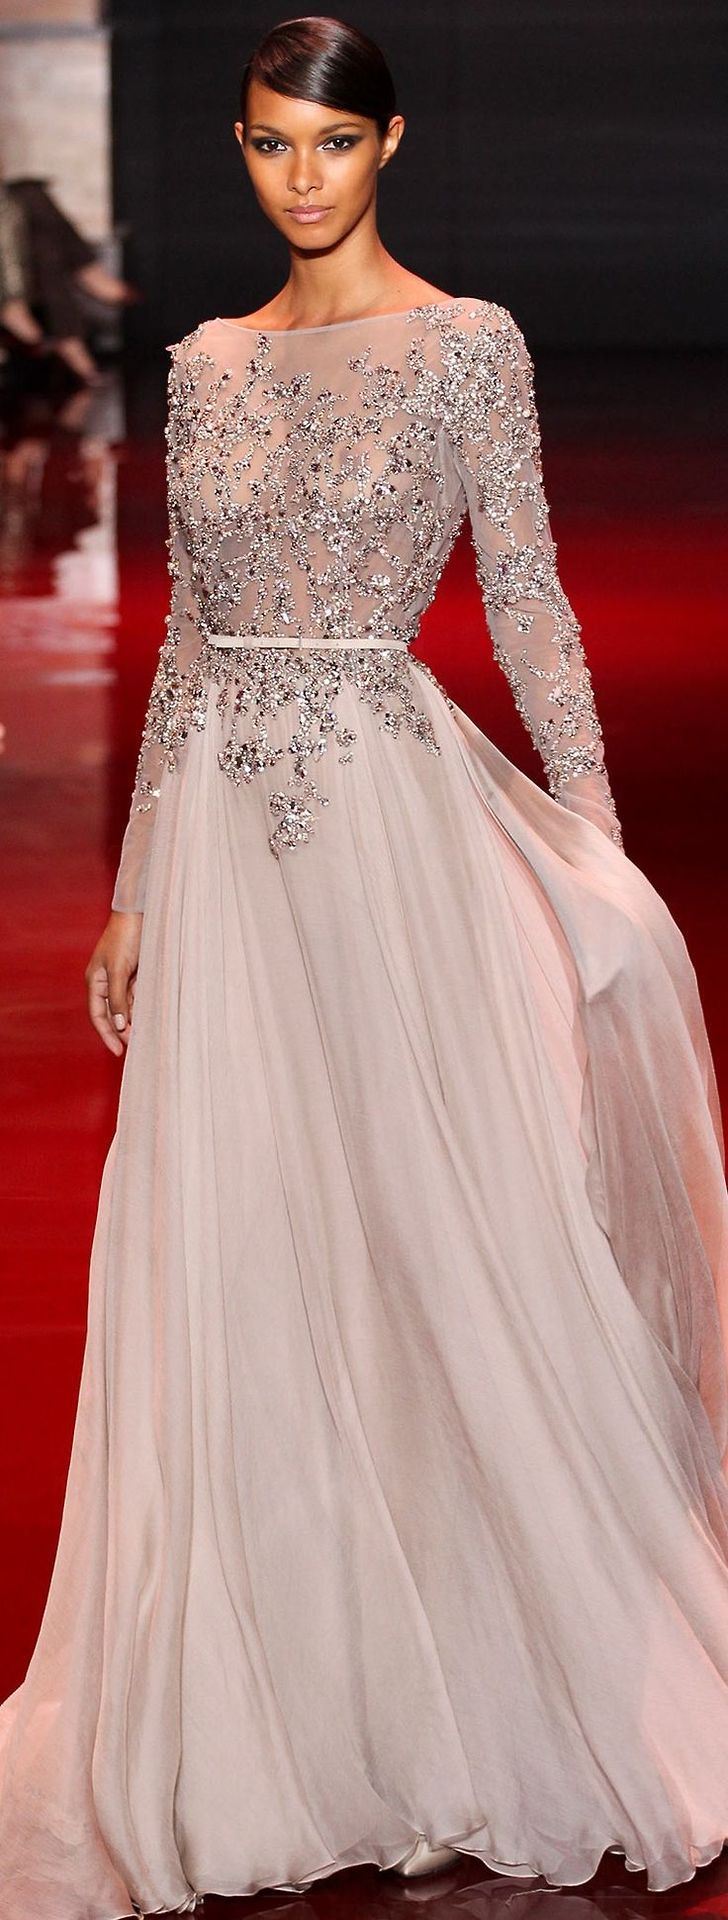 (Elie Saab Couture, Fall 2013)